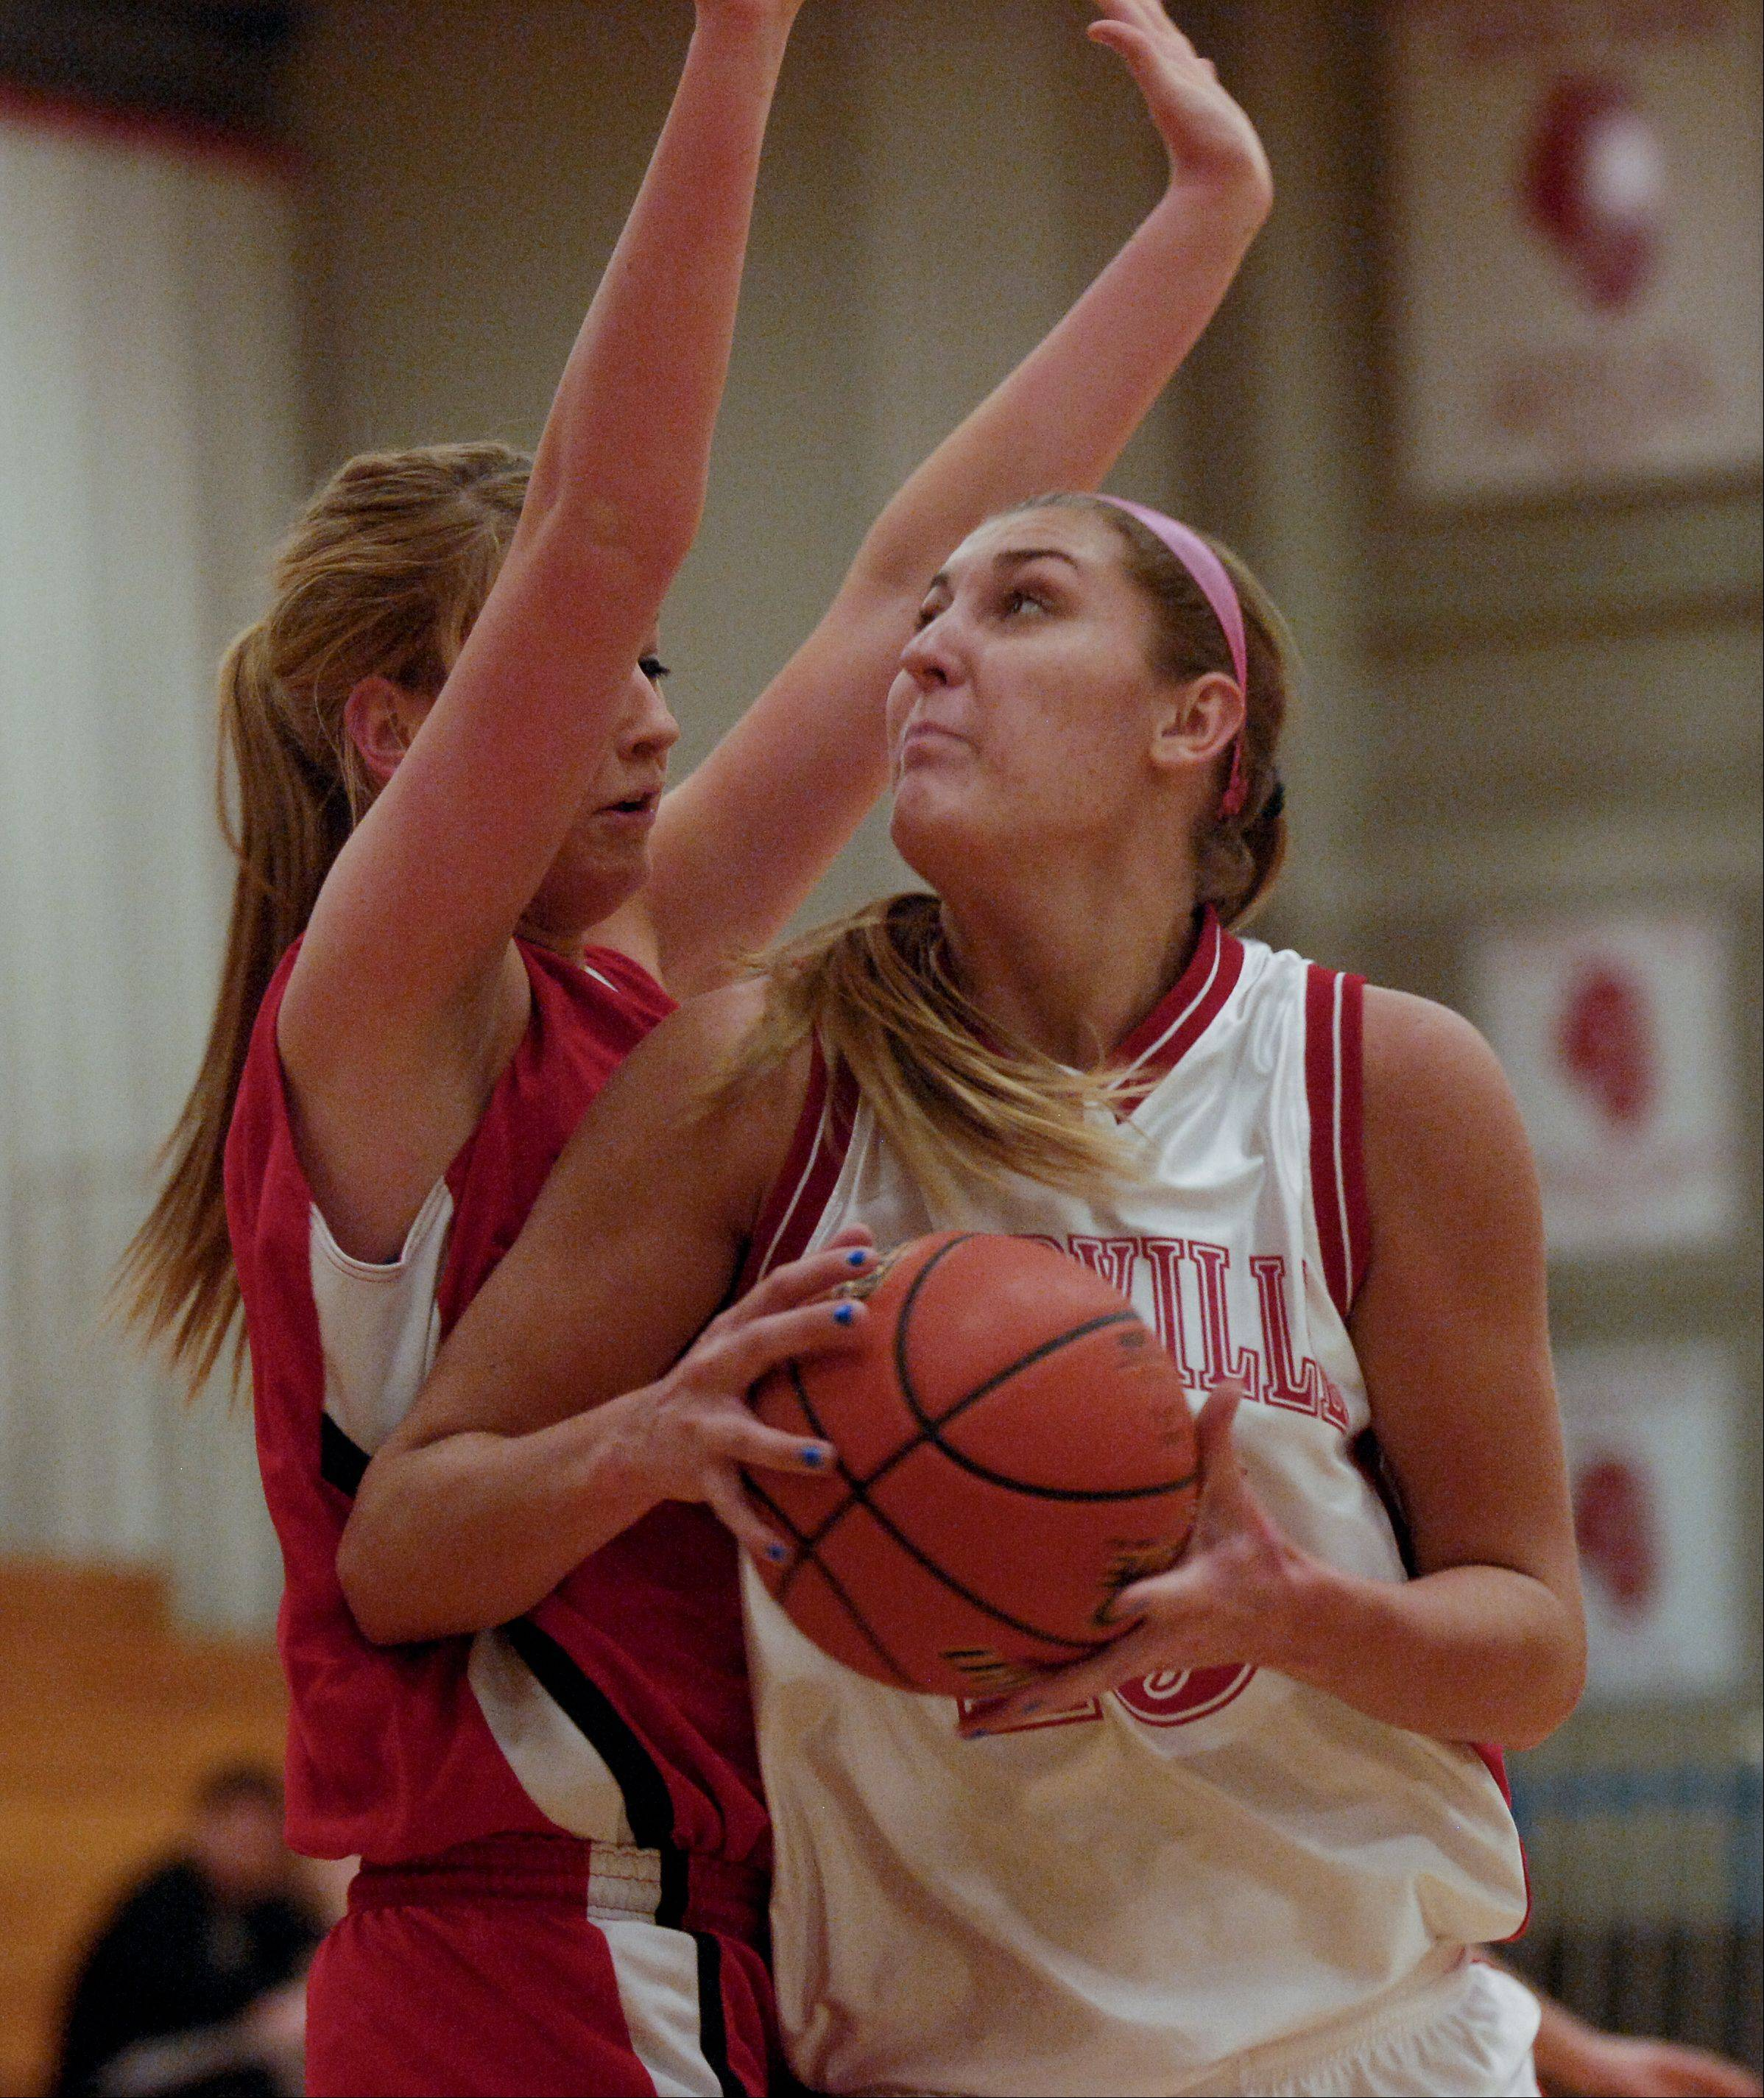 Victoria Trowbridge of Naperville Central heads to the hood past Emily Schramek of Benet Academy during the girls Class 4A regional final basketball game, Thursday in Lisle.